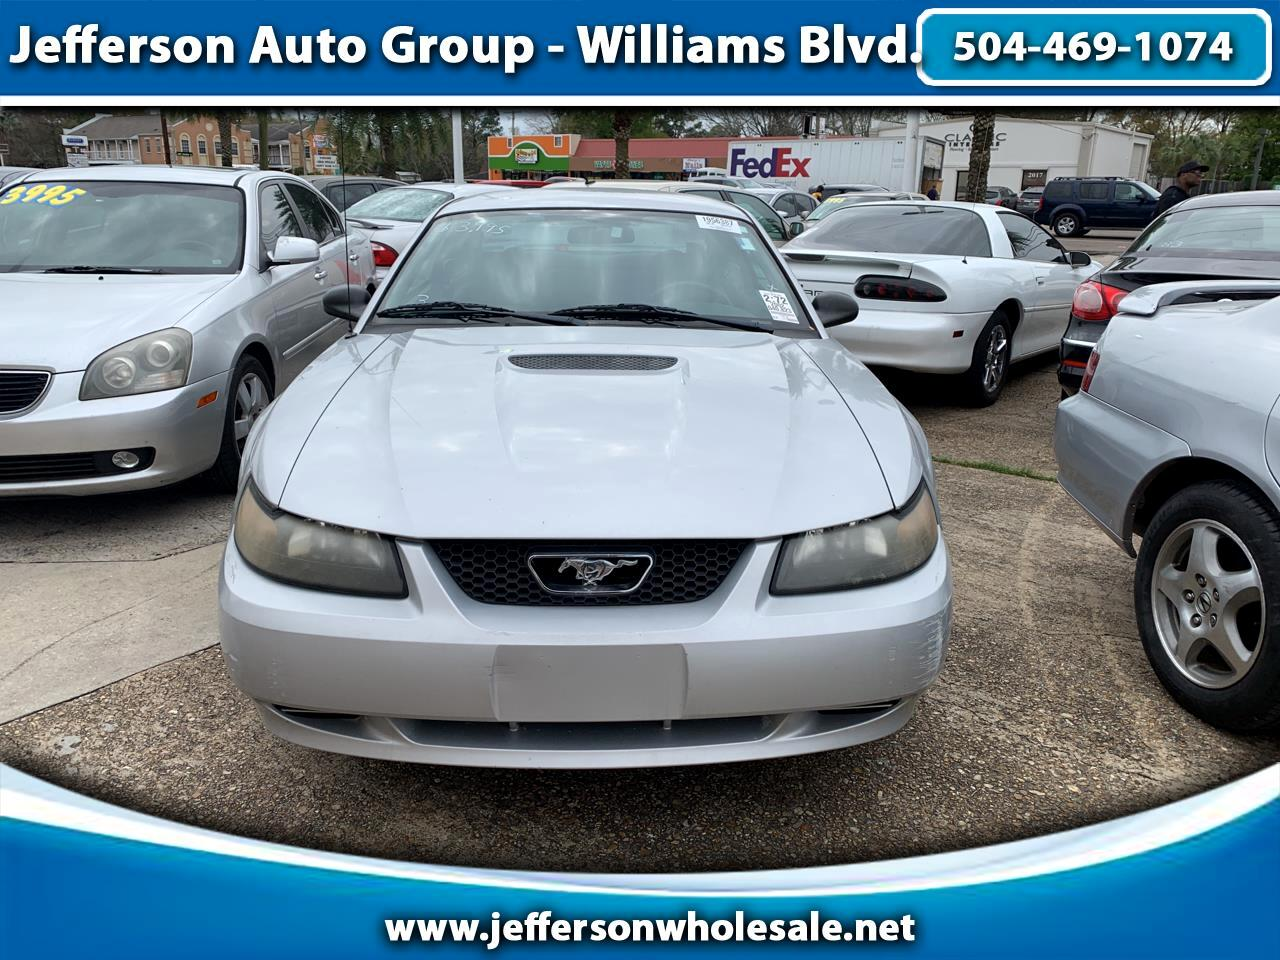 2002 Ford Mustang 2dr Cpe Standard